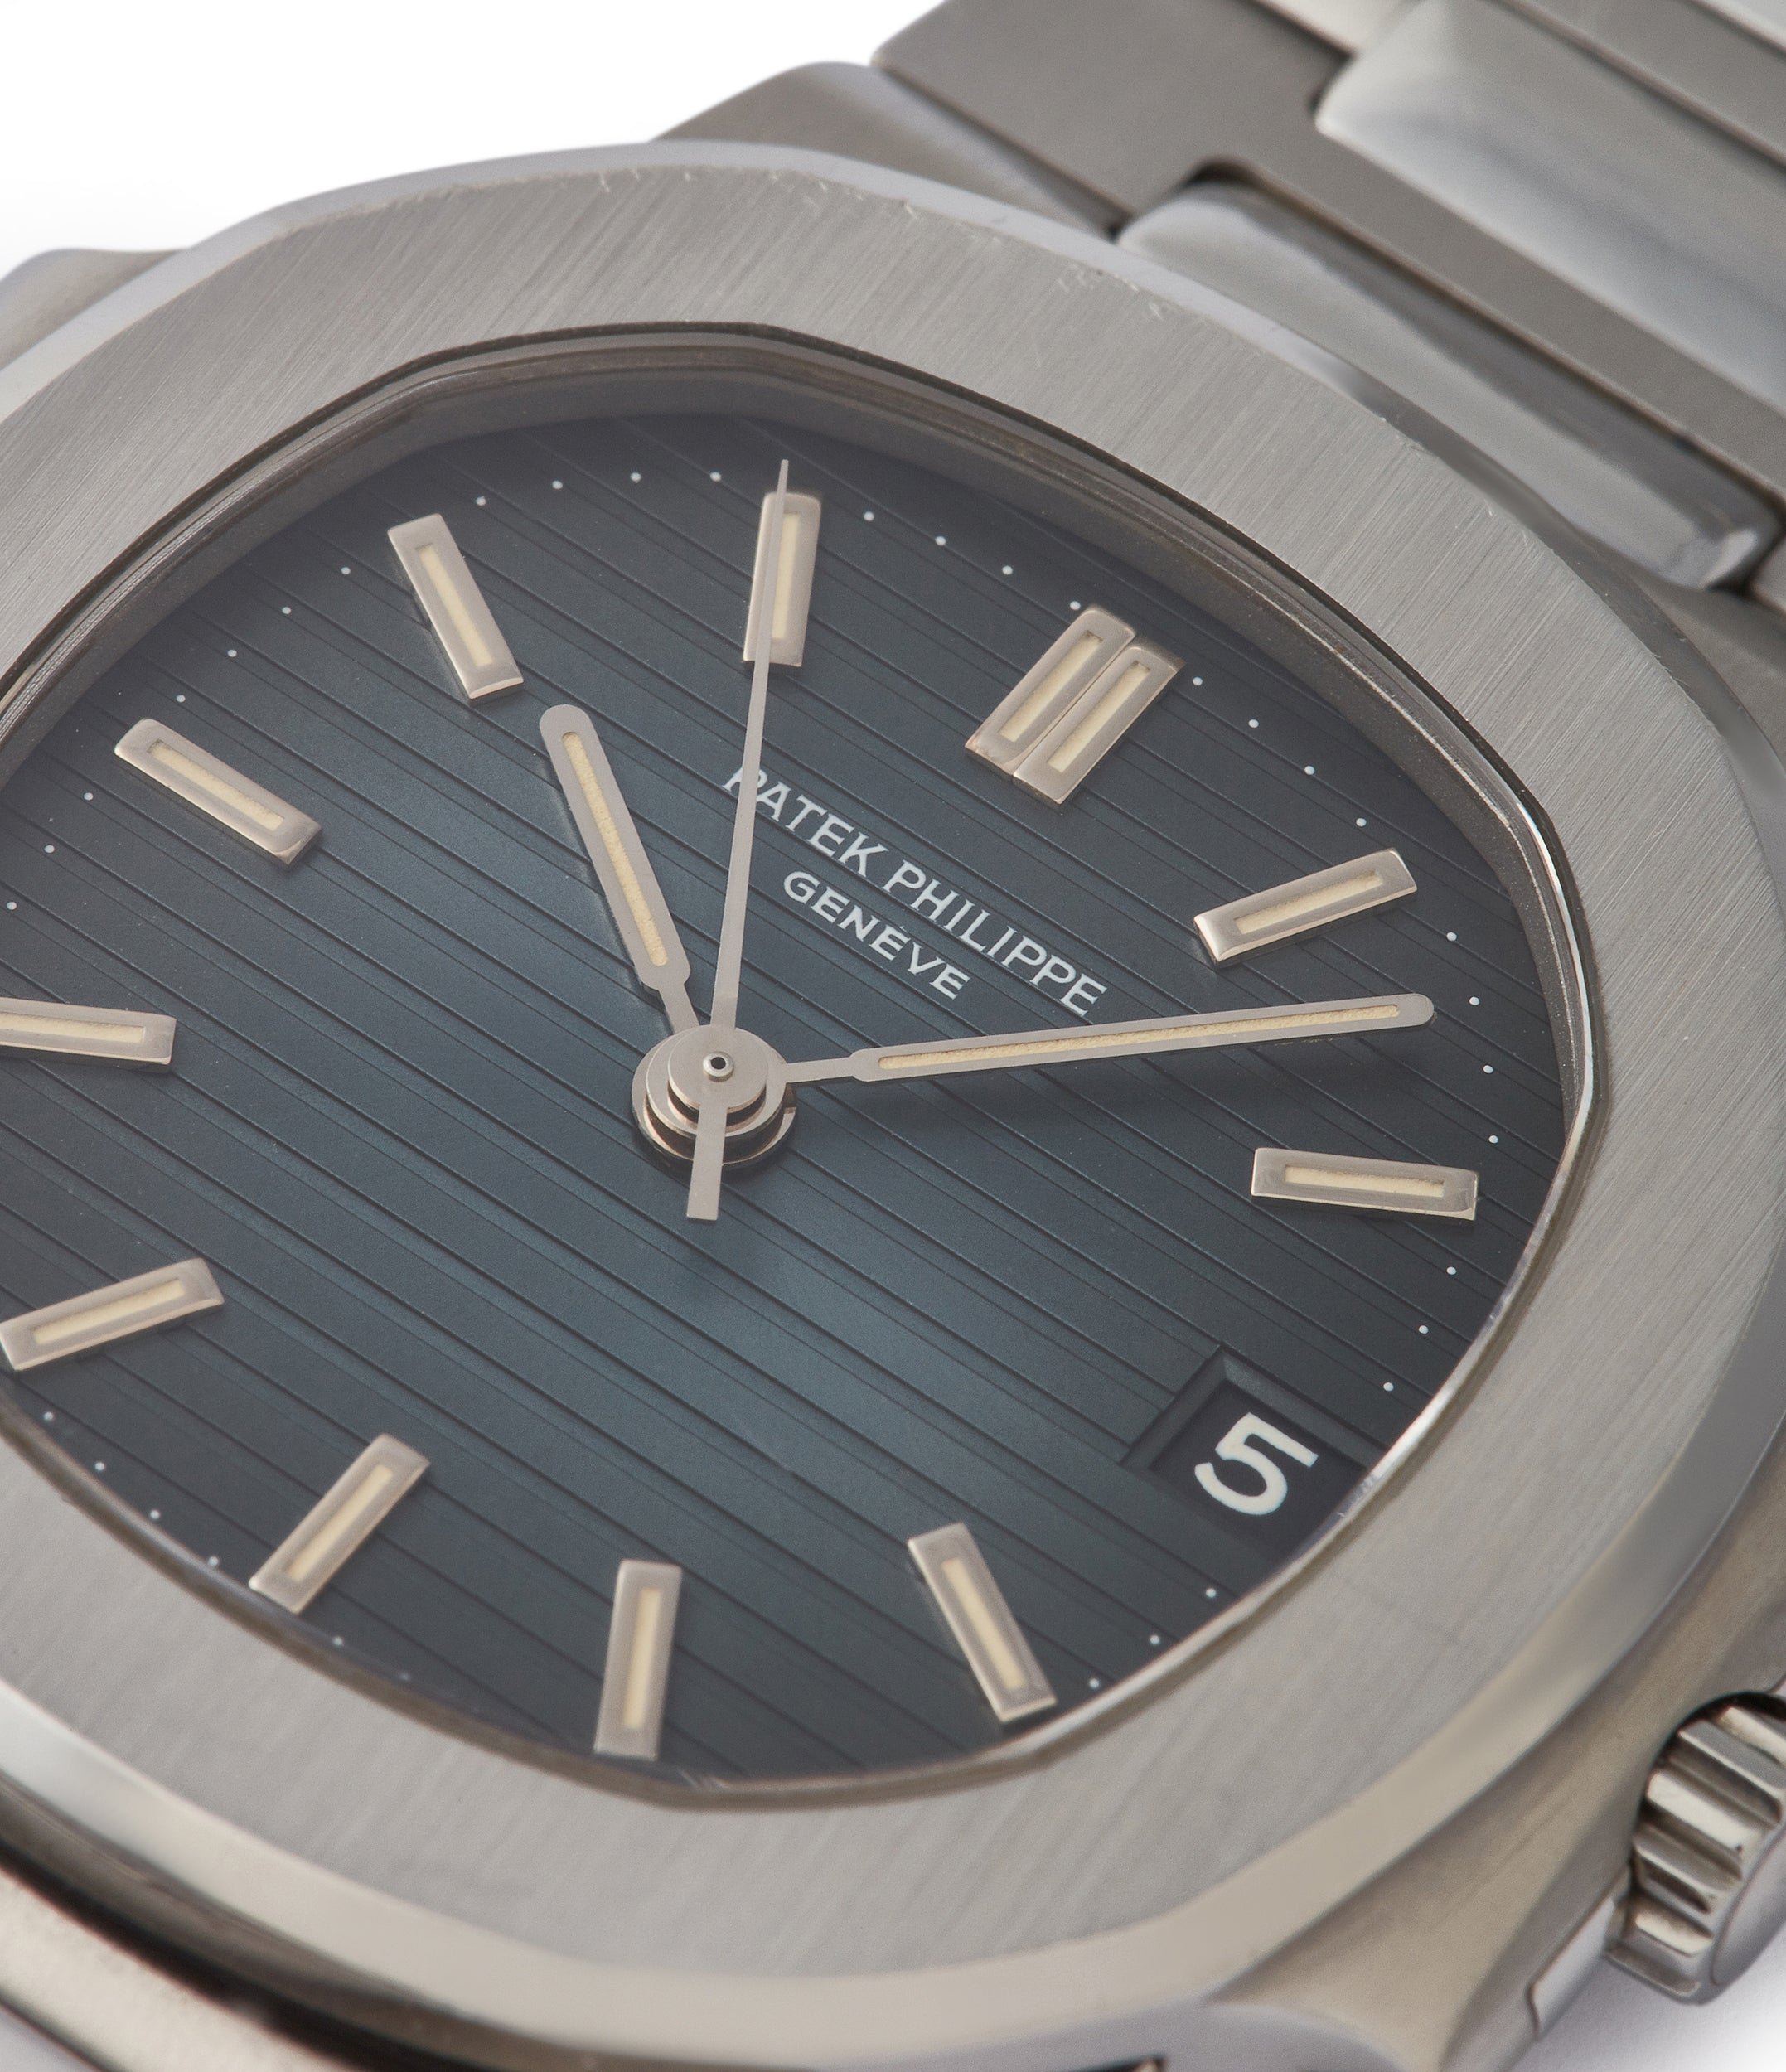 Sigma tritium dial Patek Philippe Nautilus 3800A sports watch shop online rare watch A Collected Man London